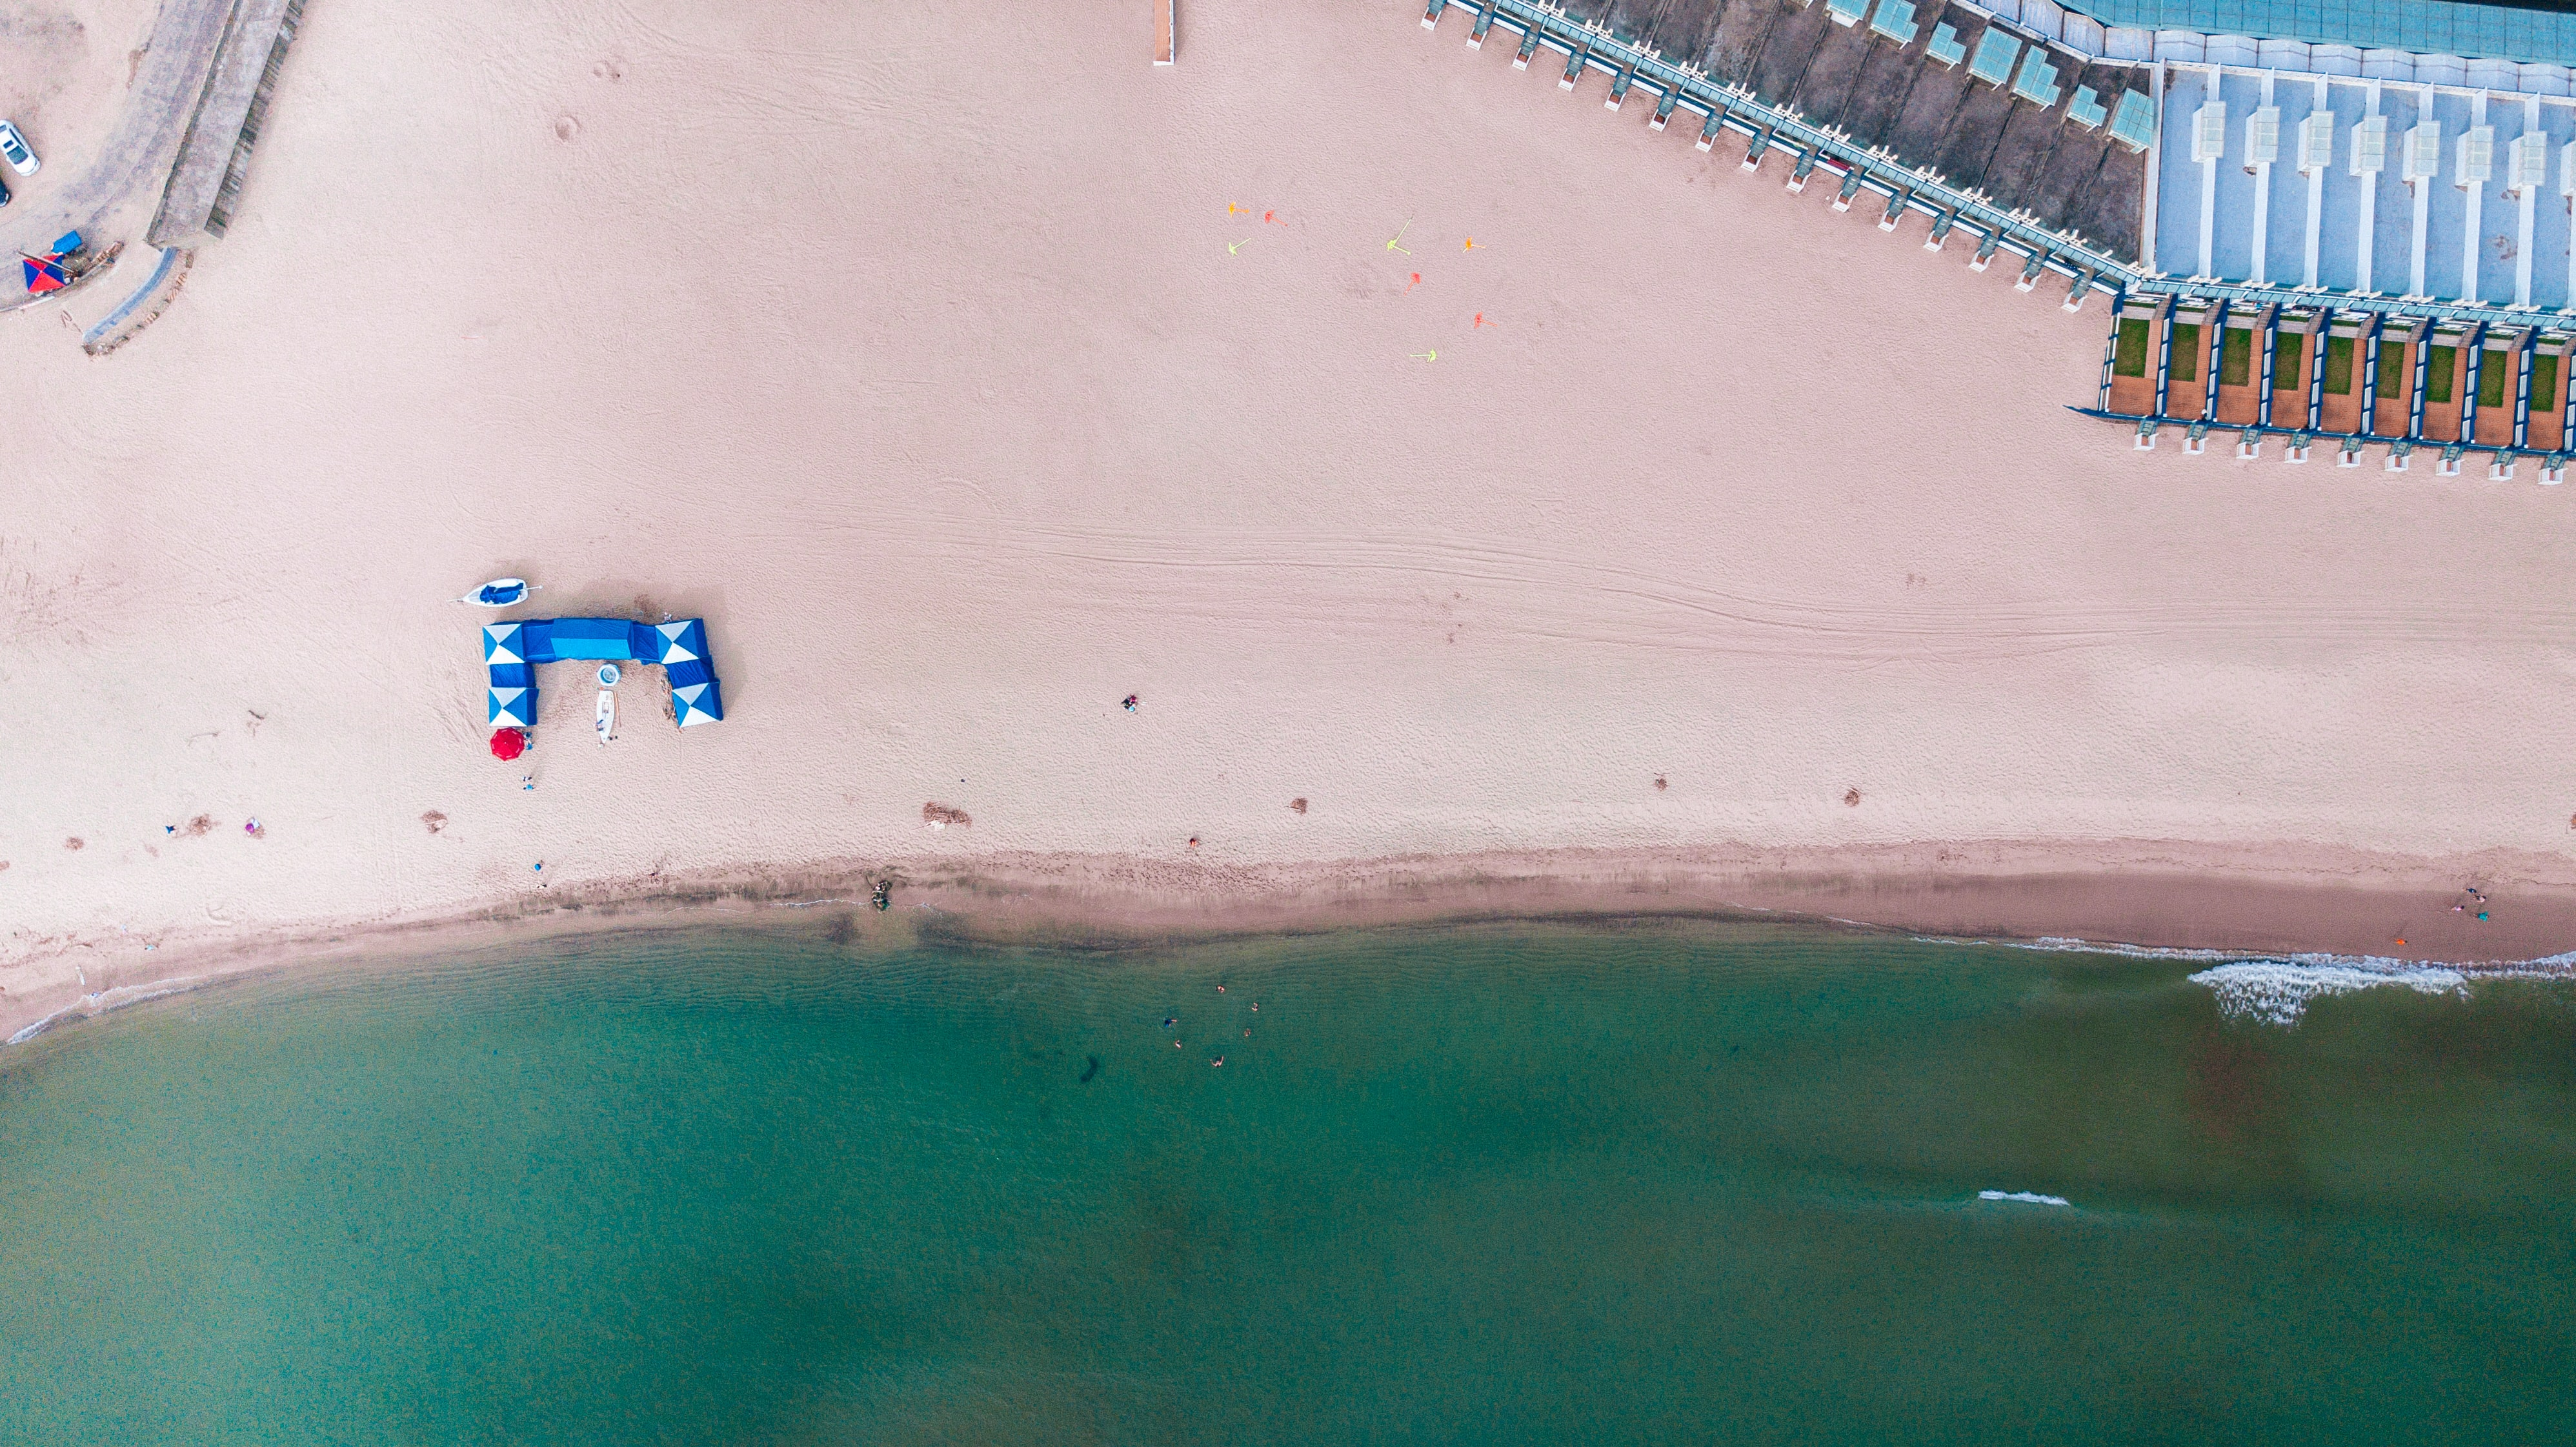 A drone shot of an empty sandy beach with a small blue pavilion